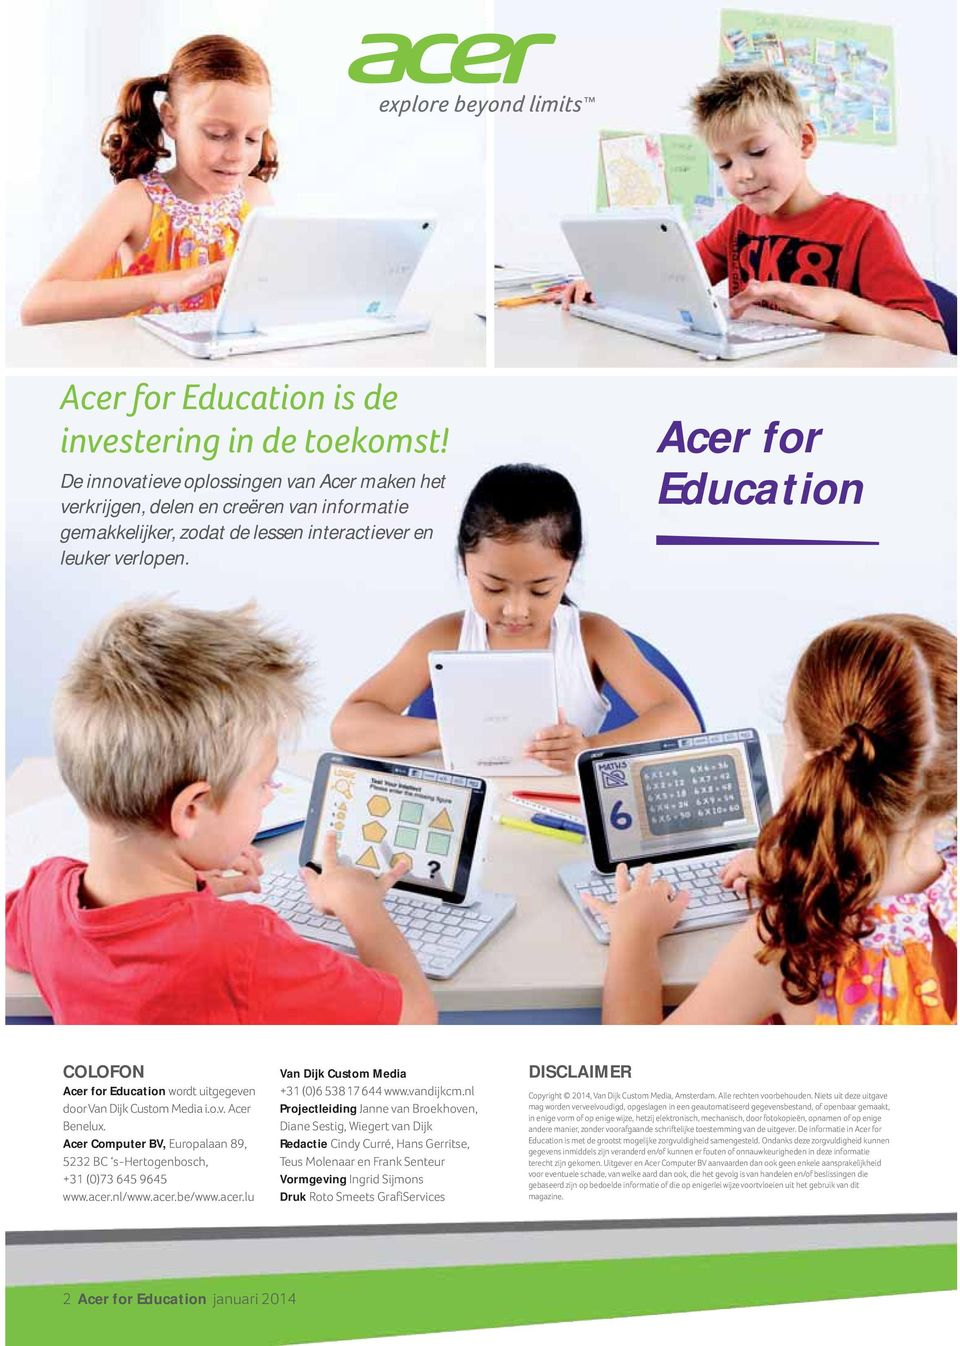 Acer for Education COLOFON Acer for Education wordt uitgegeven door Van Dijk Custom Media i.o.v. Acer Benelux. Acer Computer BV, Europalaan 89, 5232 BC s-hertogenbosch, +31 (0)73 645 9645 www.acer.